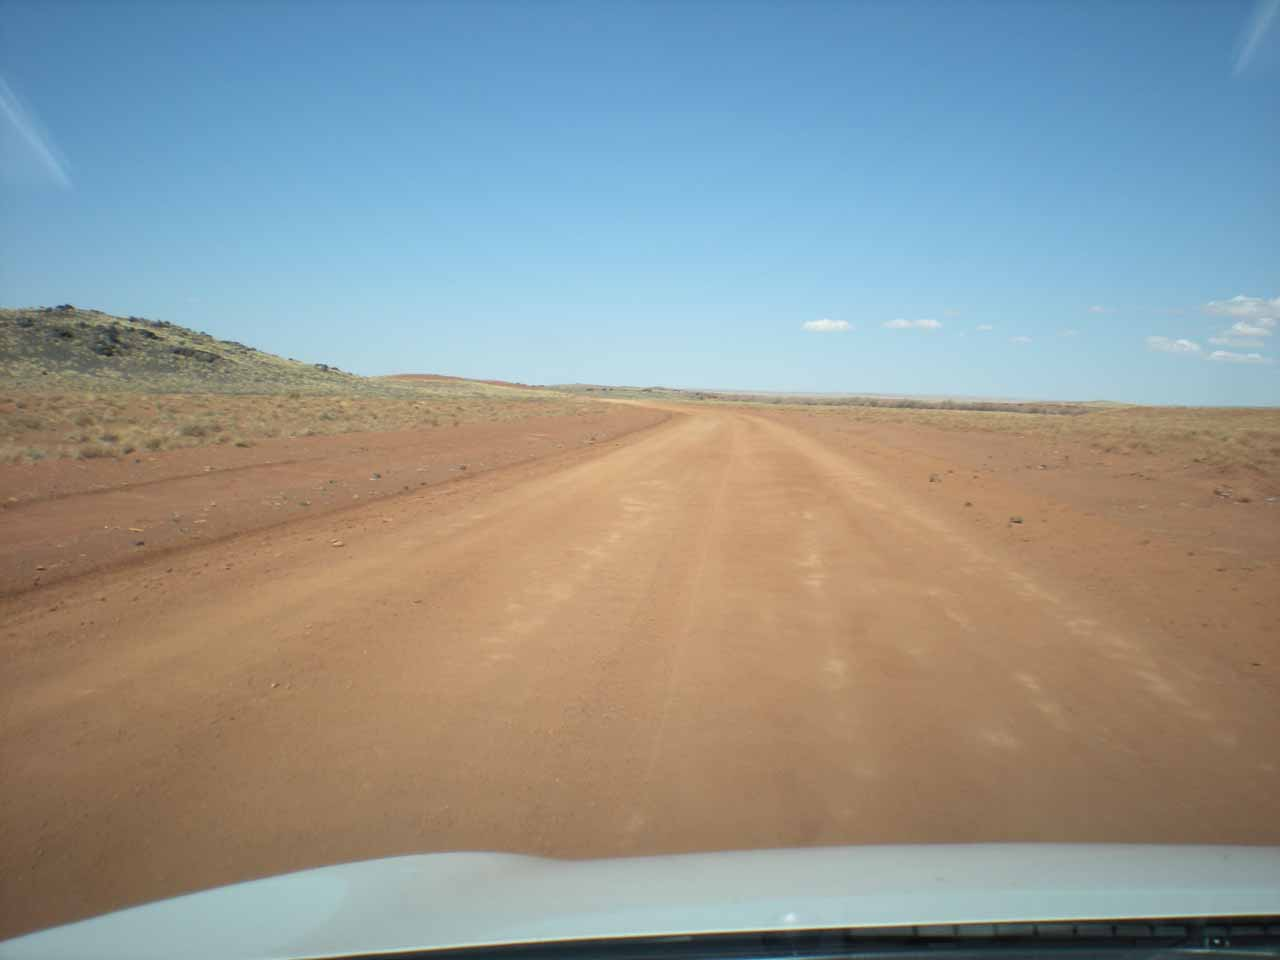 Now on some unpaved roads in Navajo Reservation land.  Not a good place to get lost